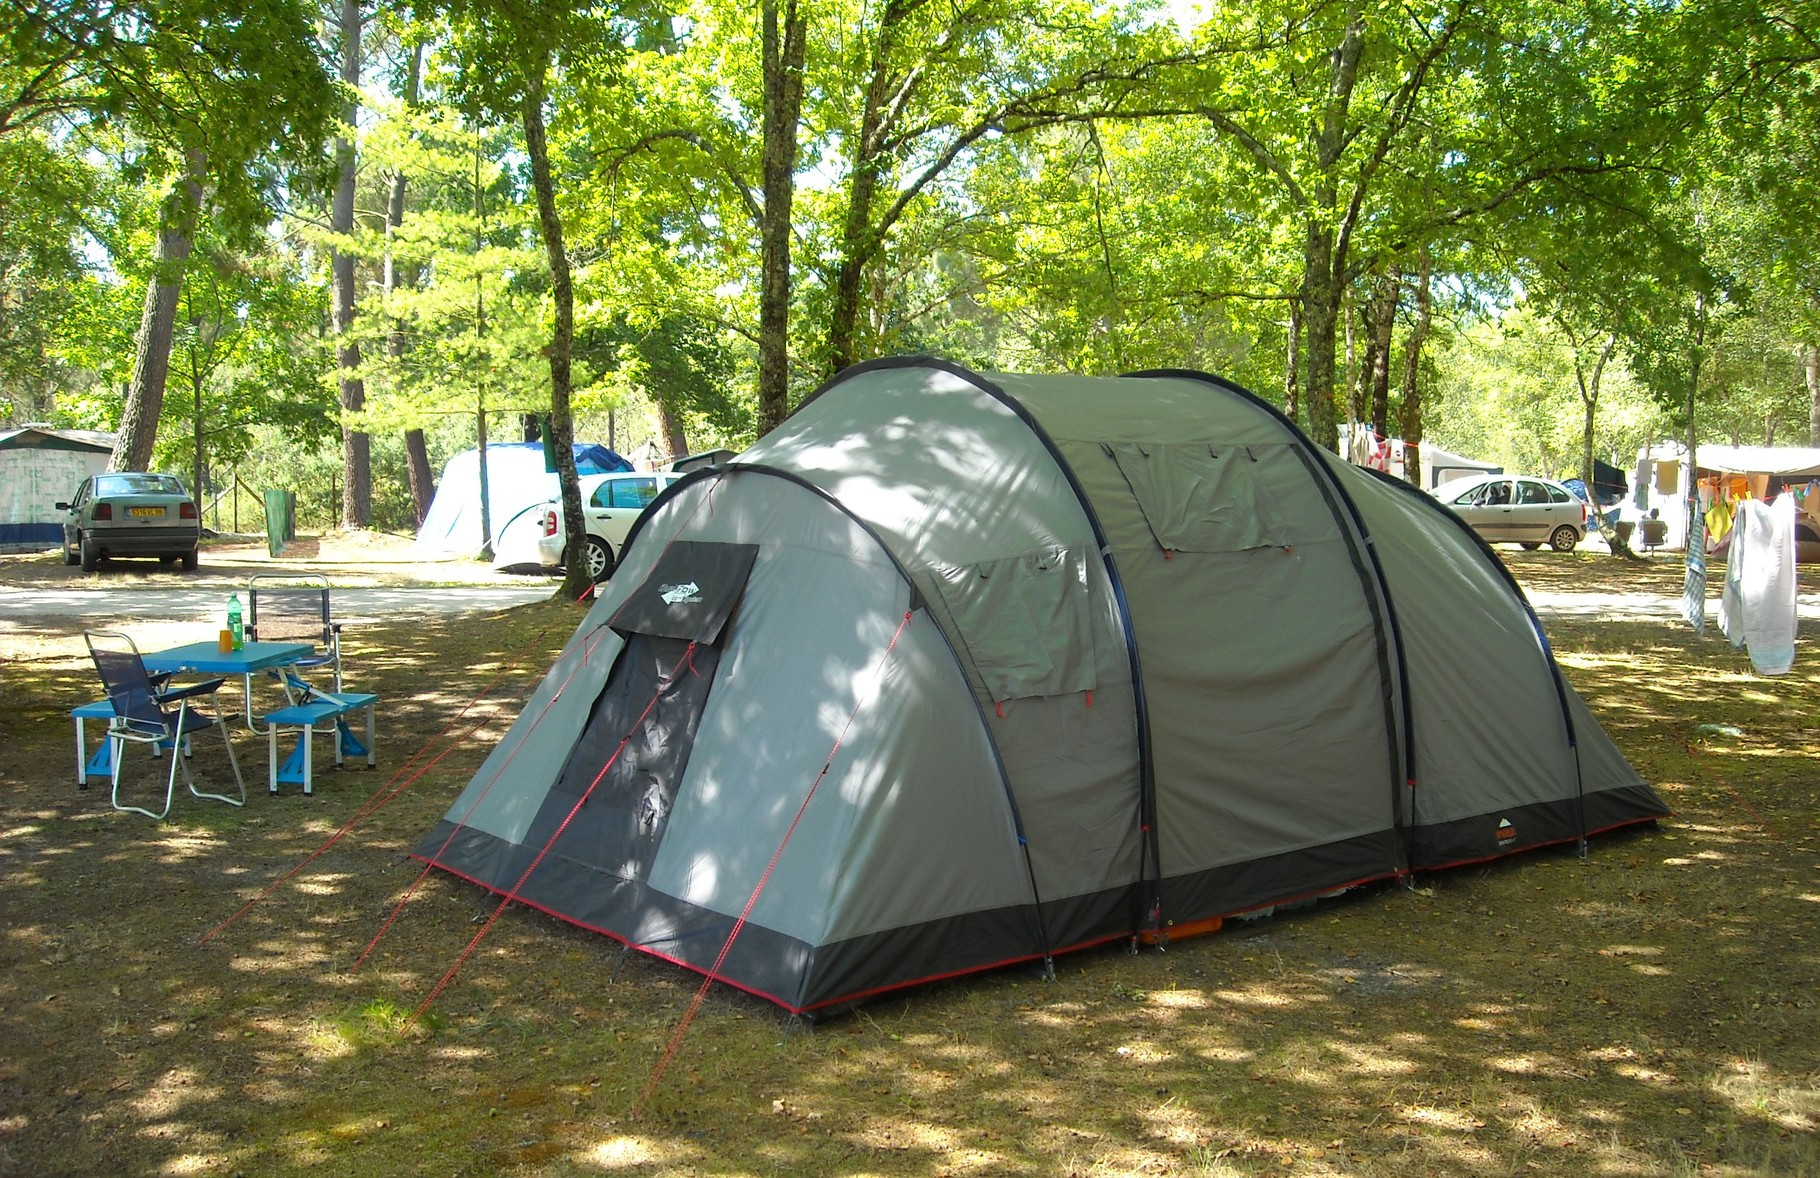 Pitch for tent